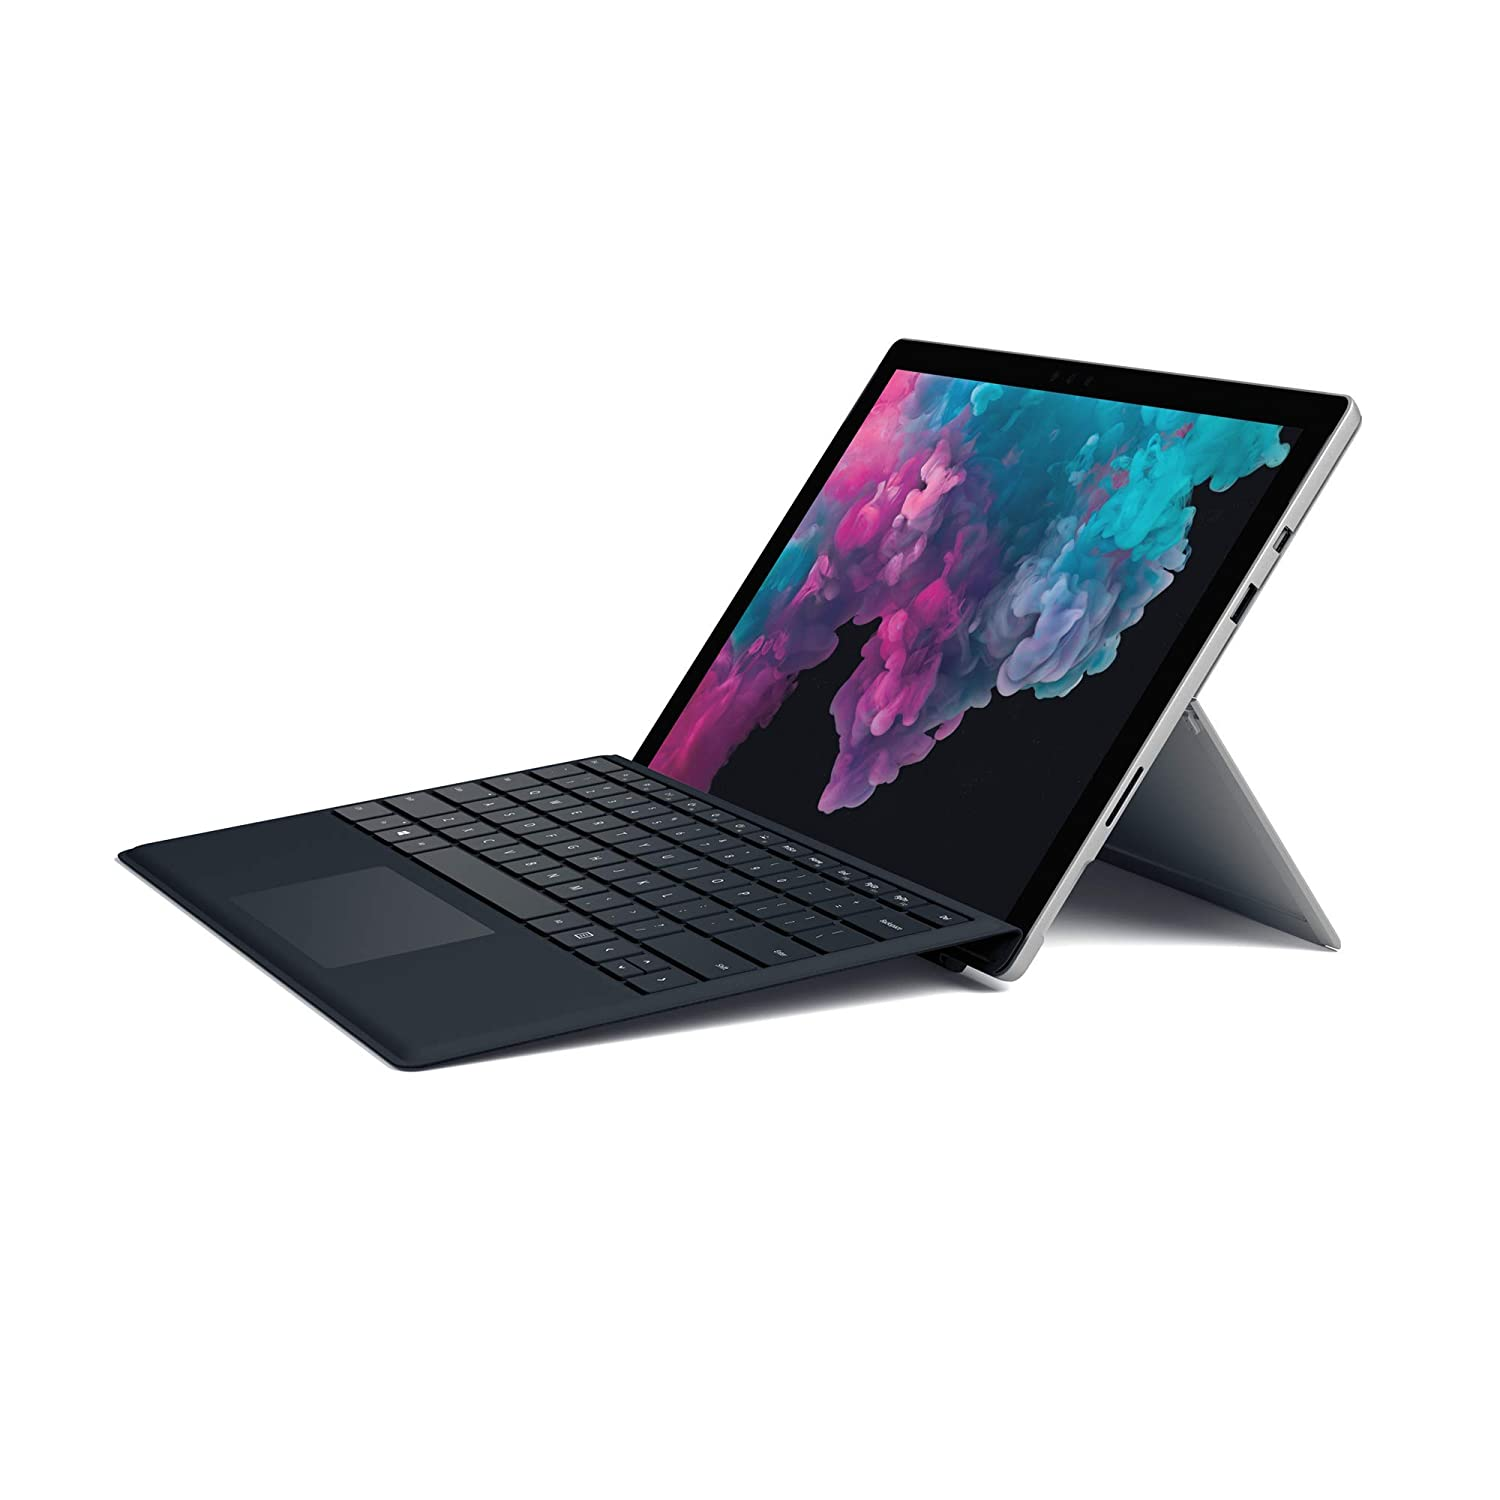 Microsoft Surface Pro 6: The Tablet Sized PC